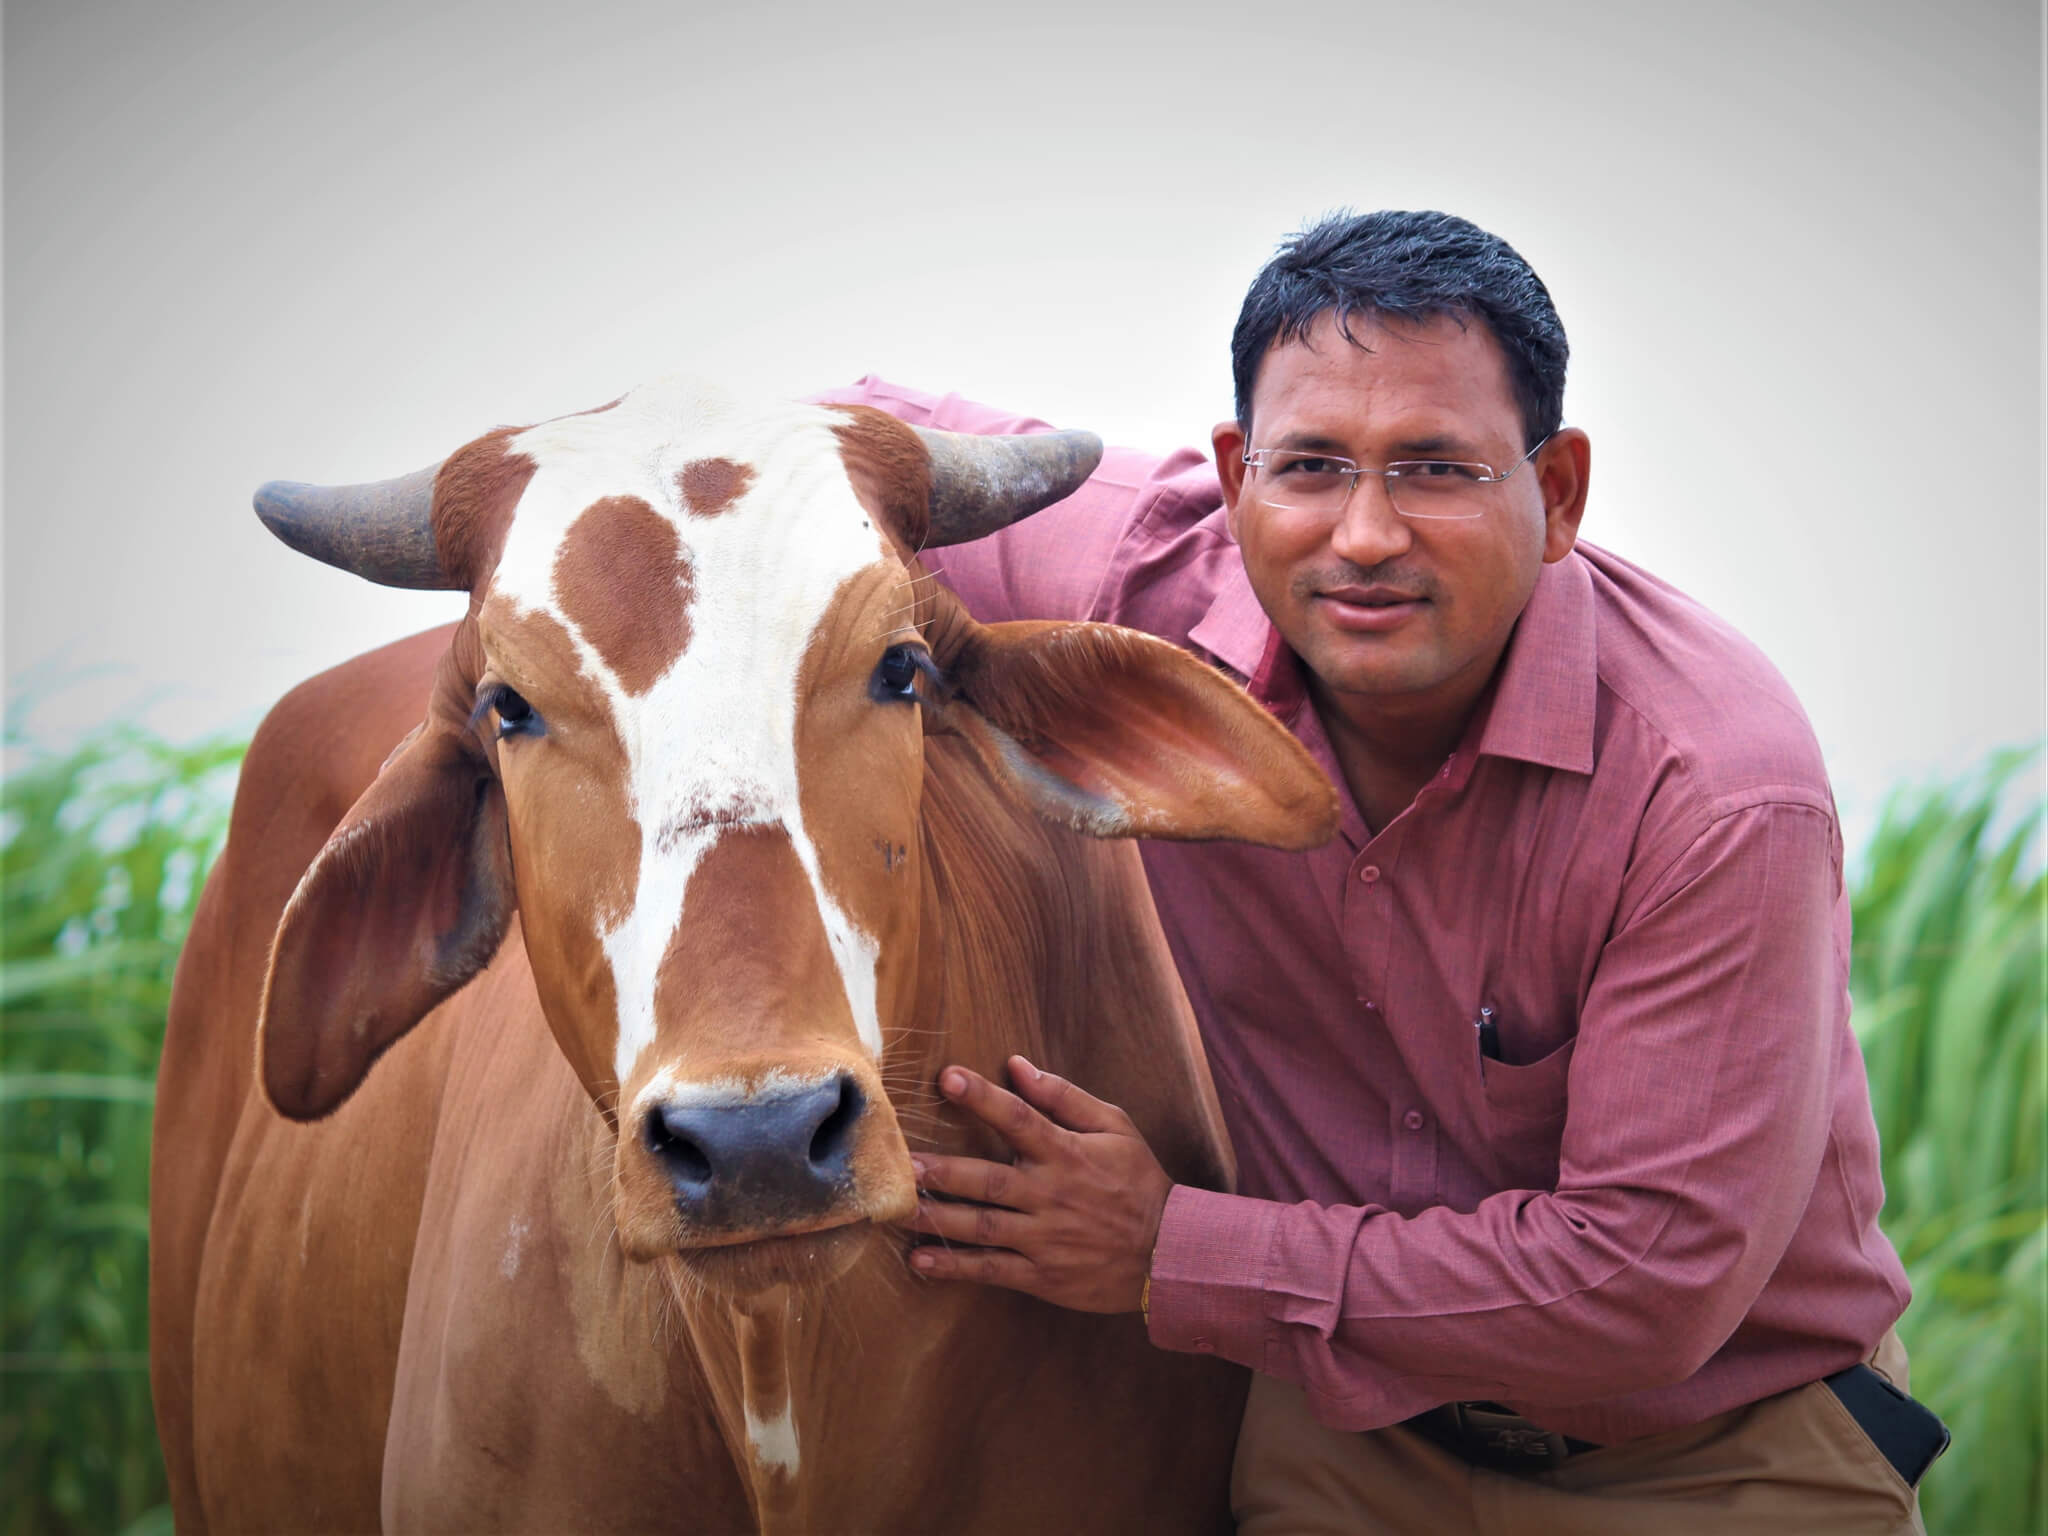 Dr. Naresh Upreti stands with his arm around rescued bullock Caro, a sanctuary resident.